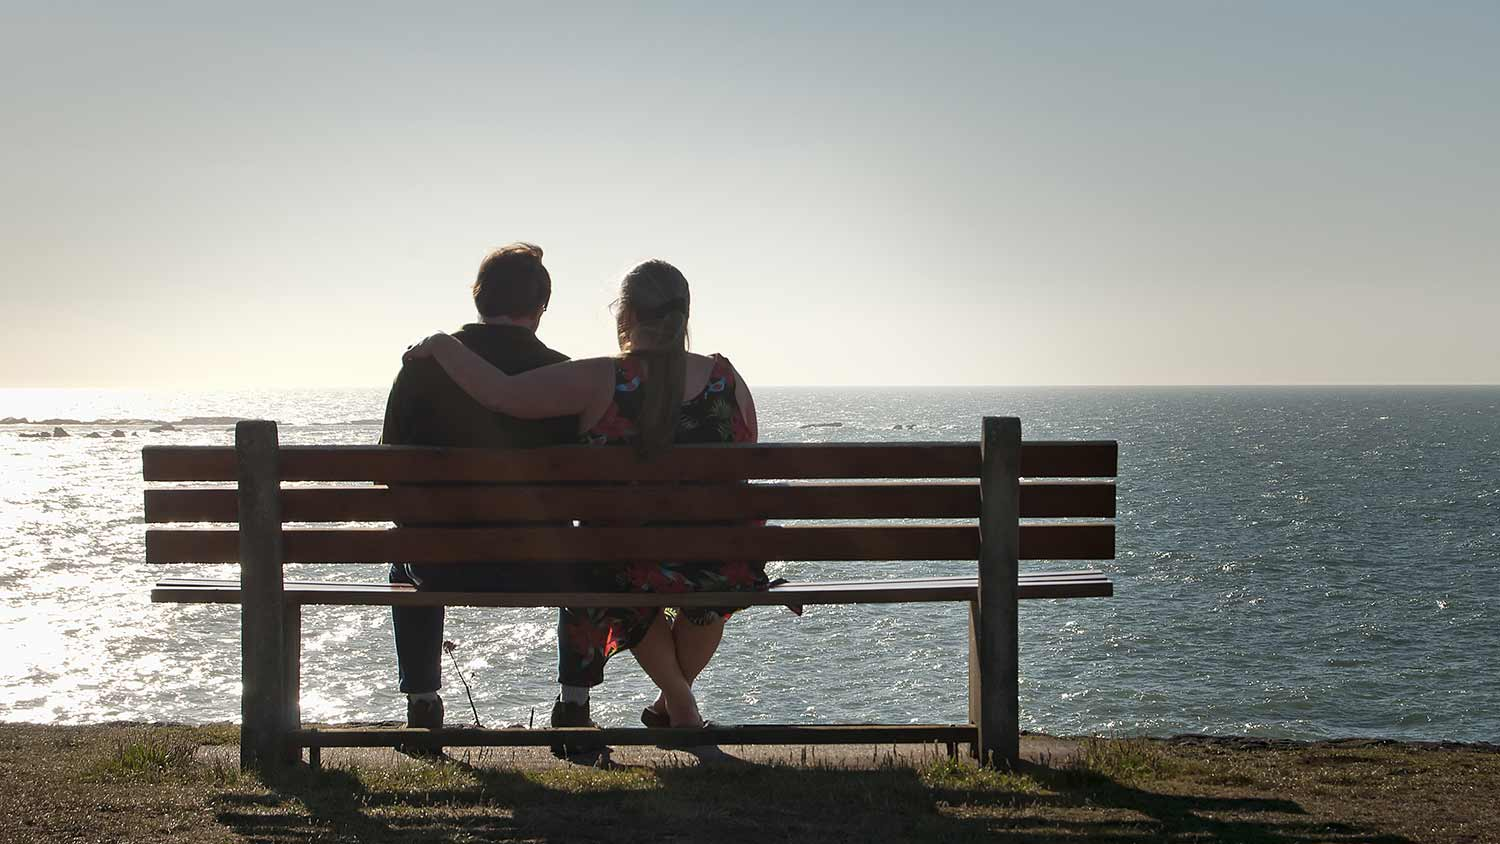 The silhouette of a couple sat on a bench looking out to sea